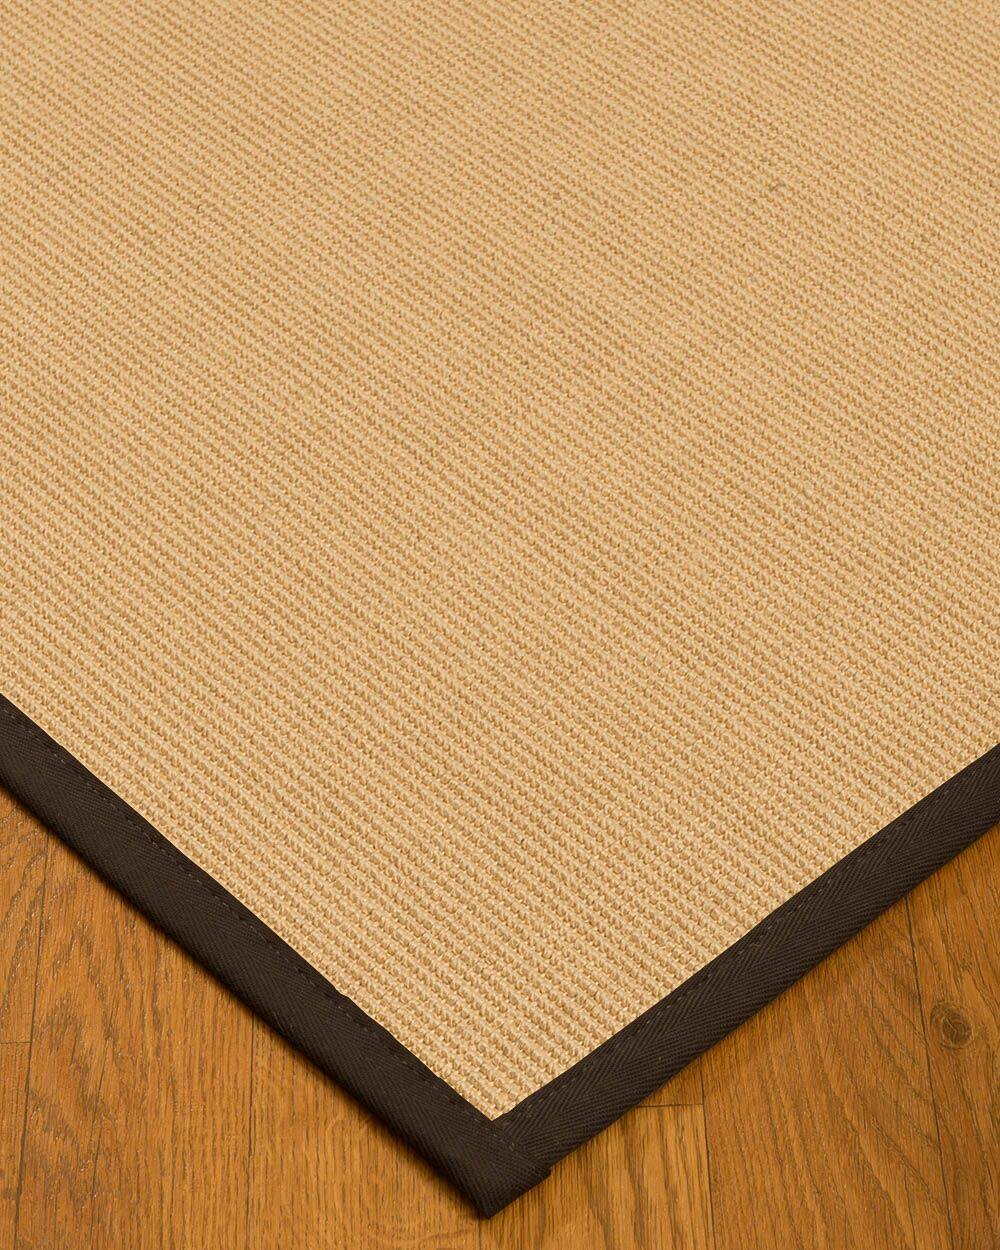 Rupendra Hand Woven Beige Area Rug Rug Size: Runner 2'6